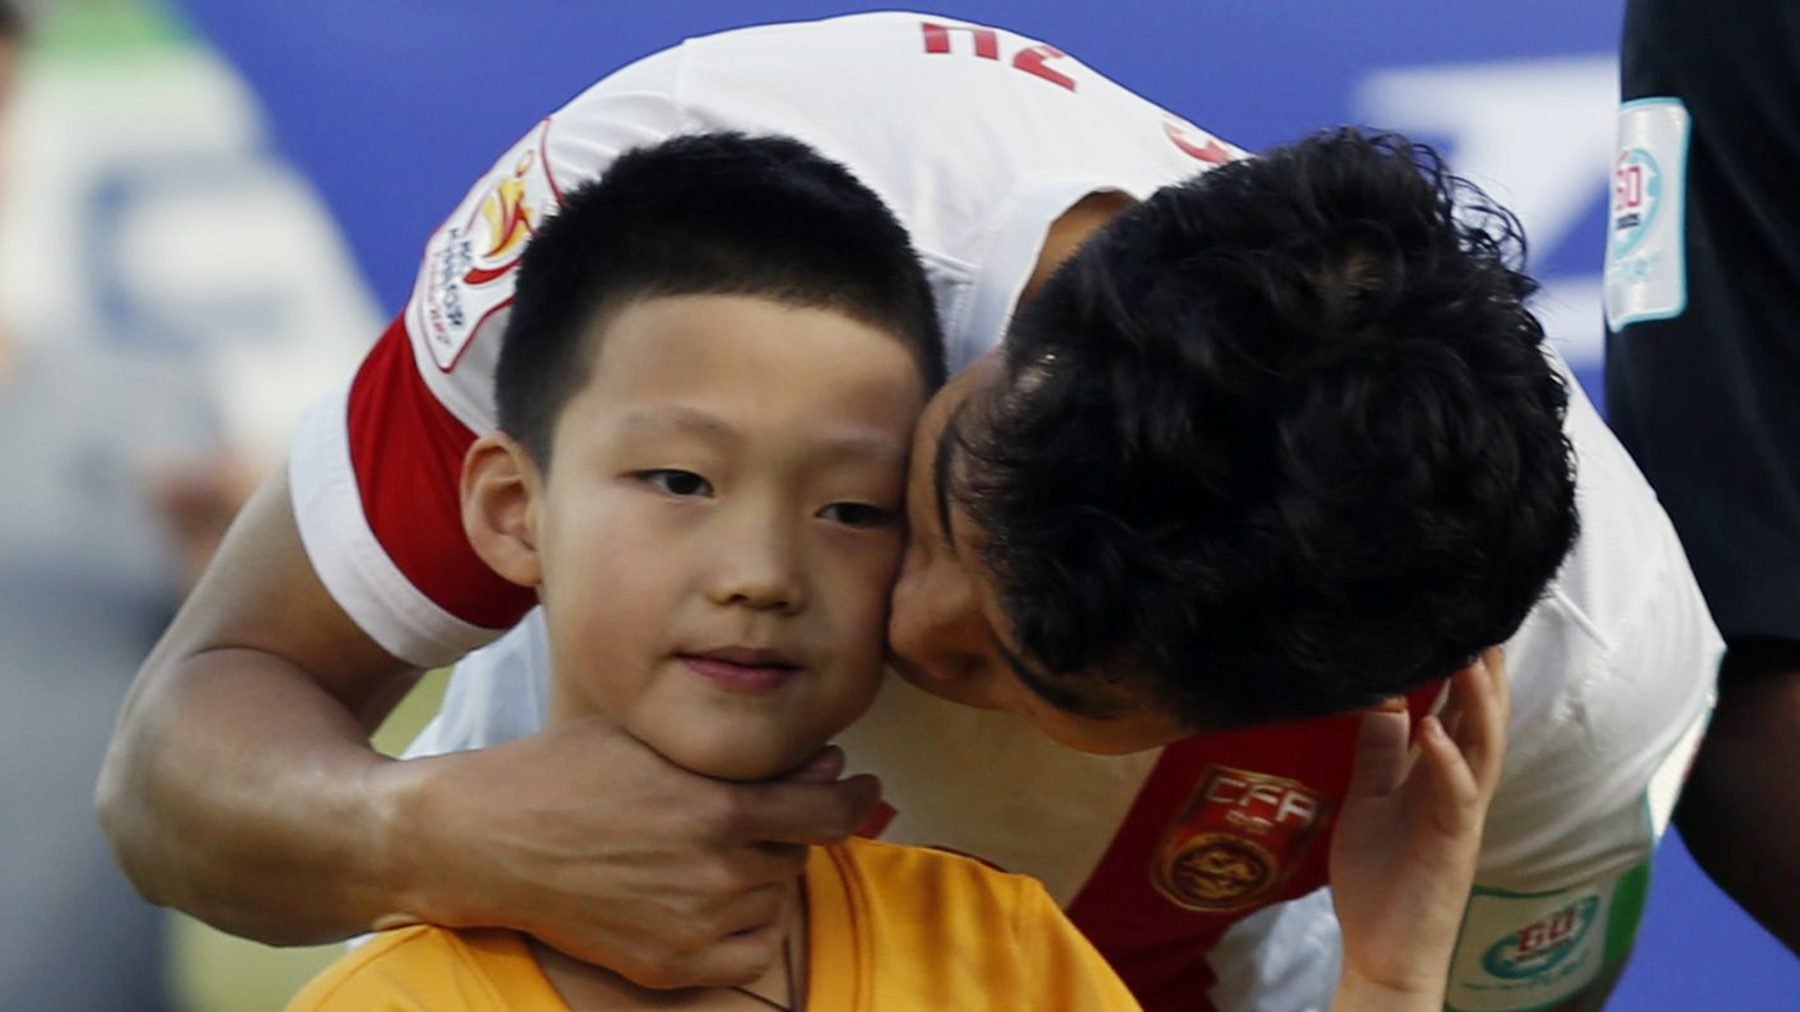 China's captain Zheng Zhi kisses a mascot as the team line up before the start of their Asian Cup Group B soccer match against North Korea at the Canberra stadium in Canberra January 18, 2015.